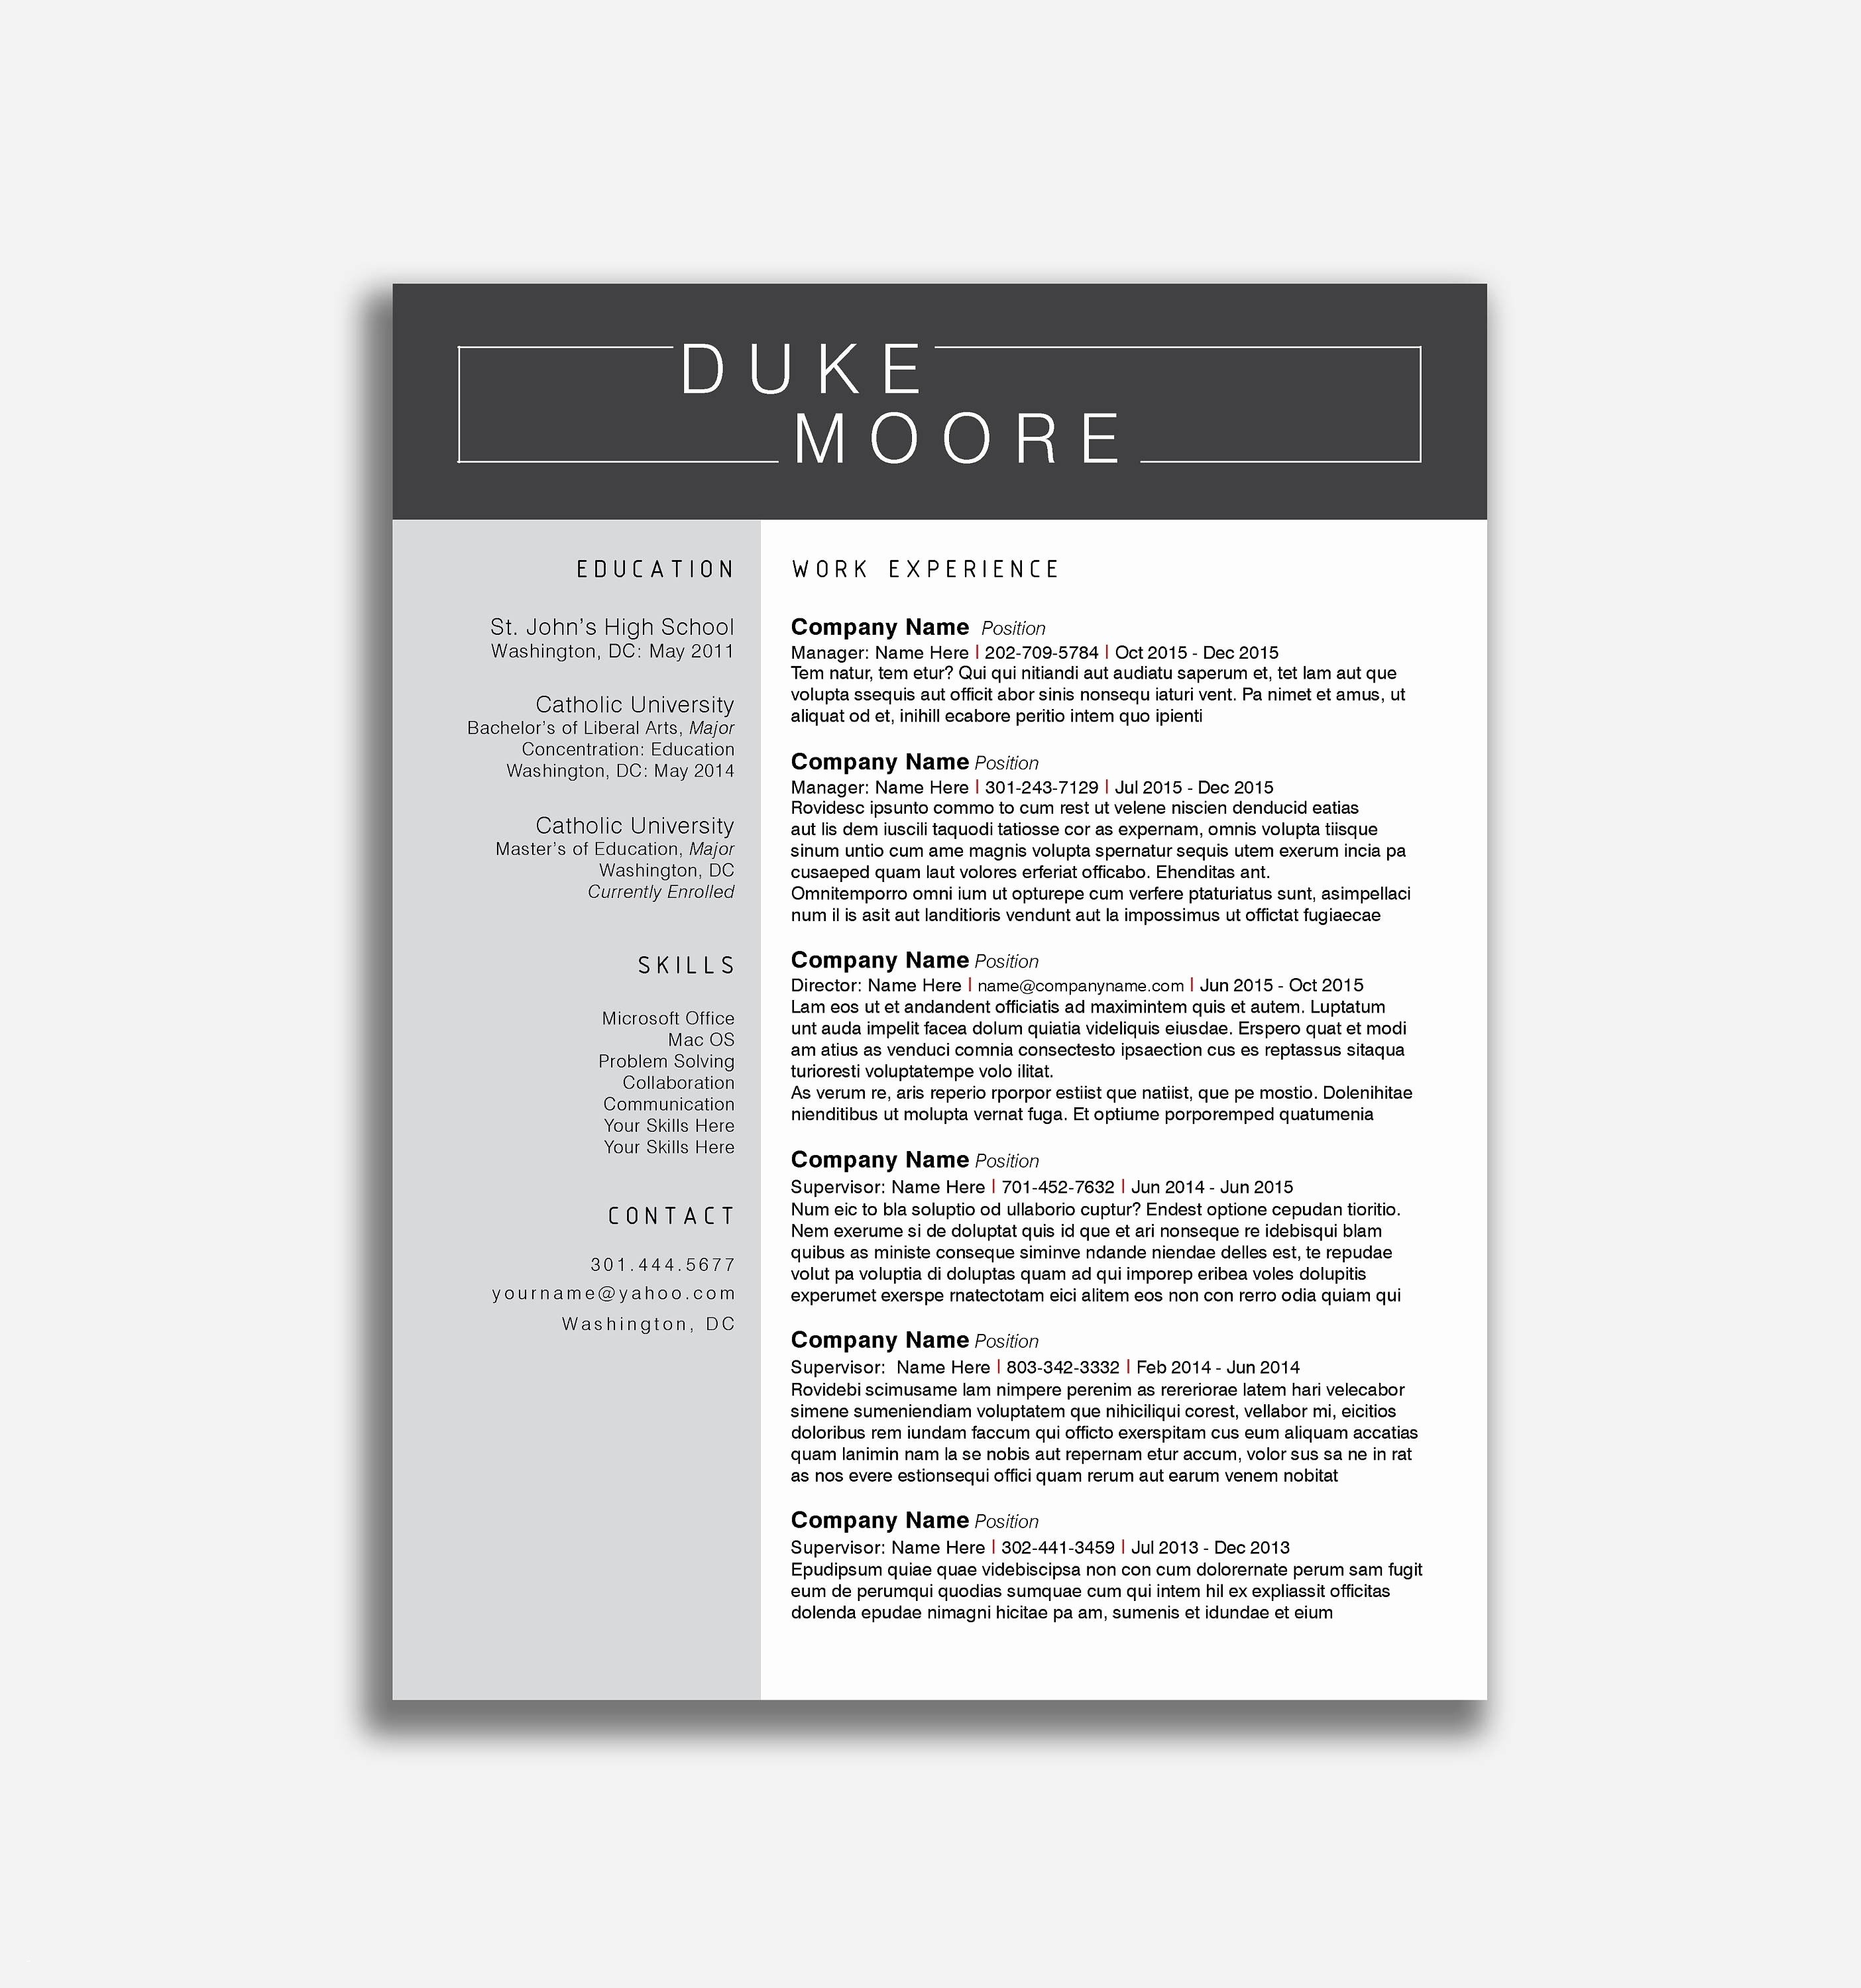 10 yahoo ceo resume template examples